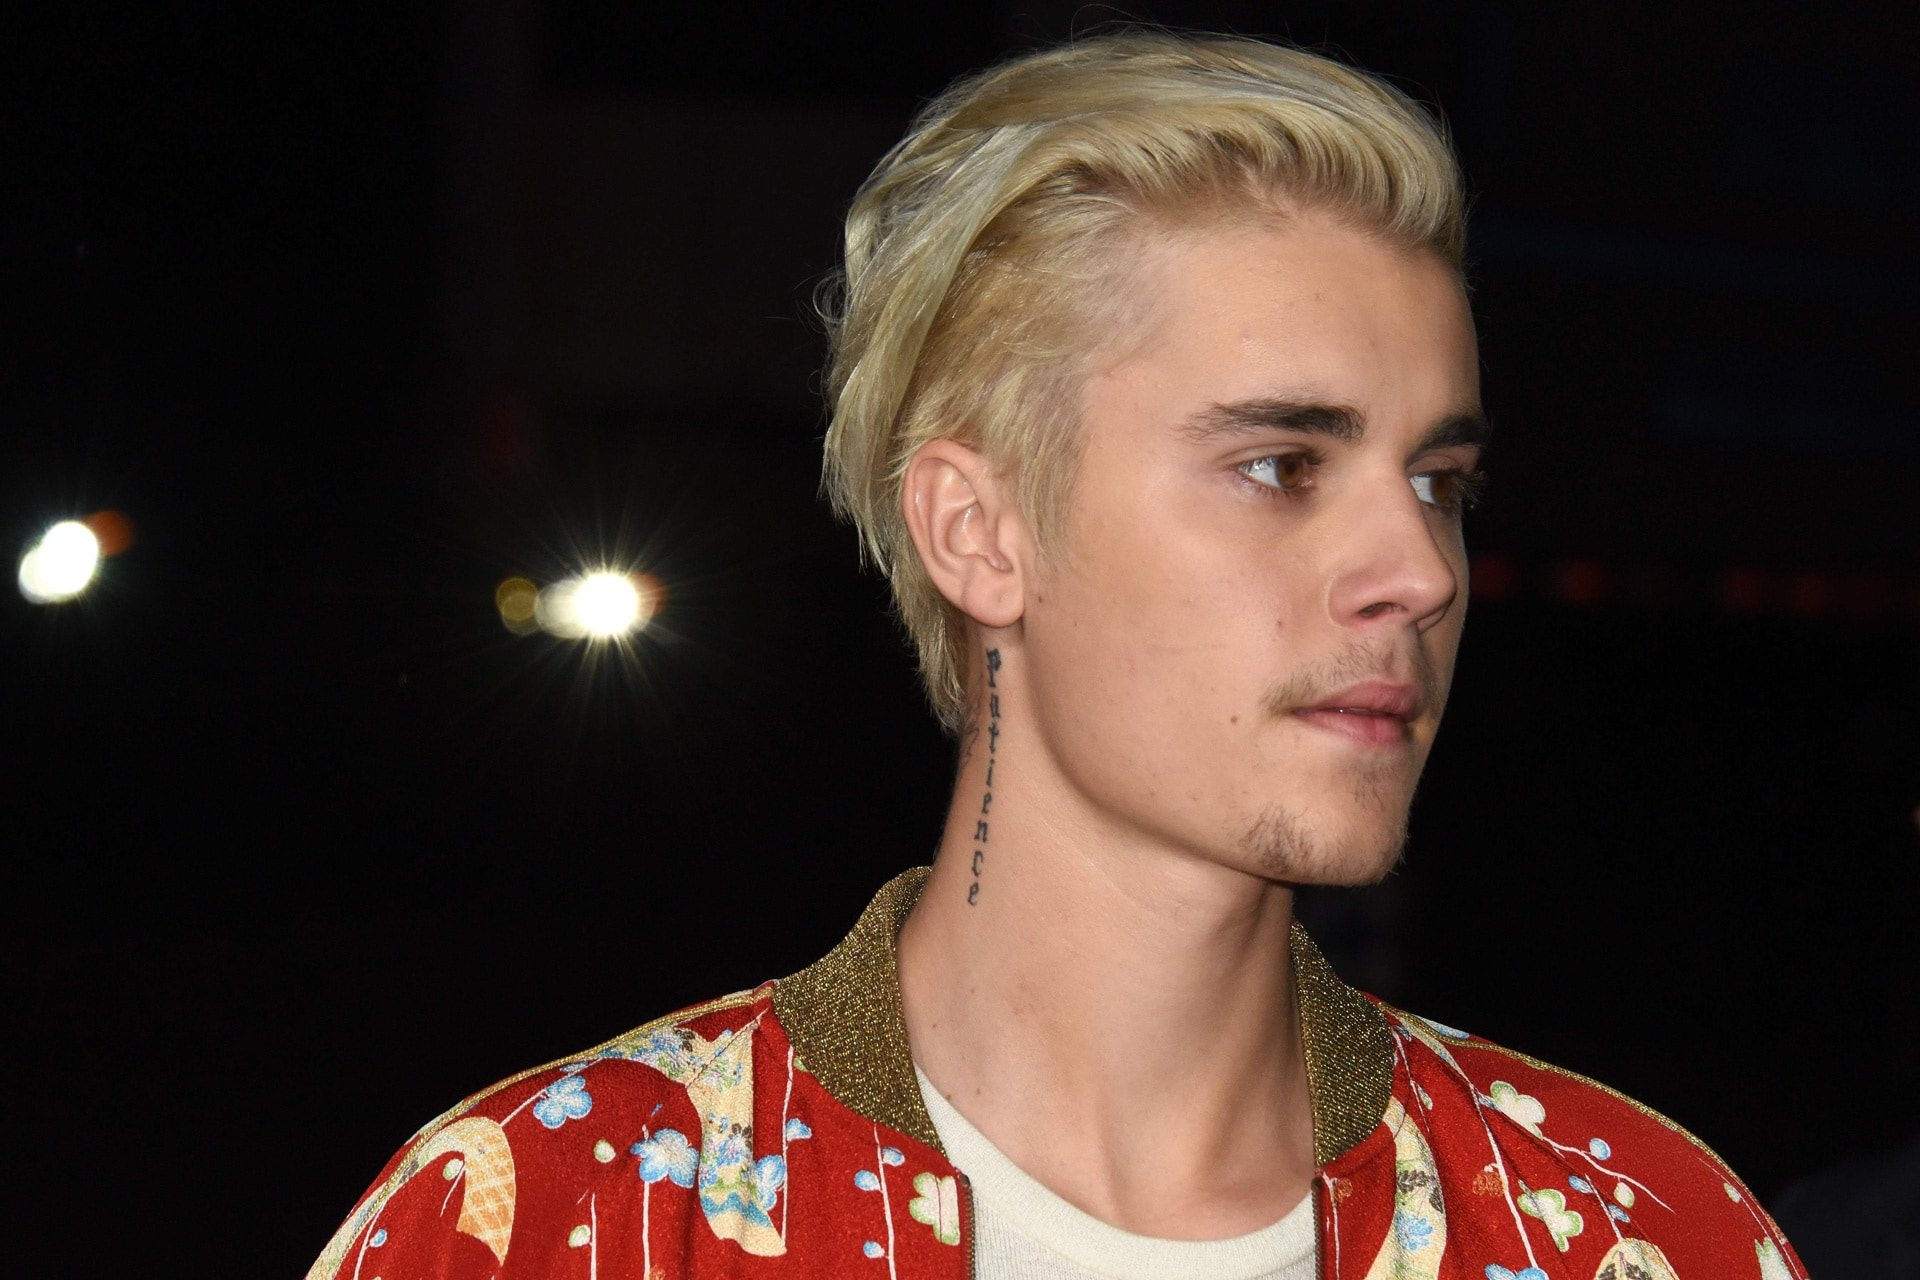 Justin Bieber got two secret face tattoos and literally nobody noticed